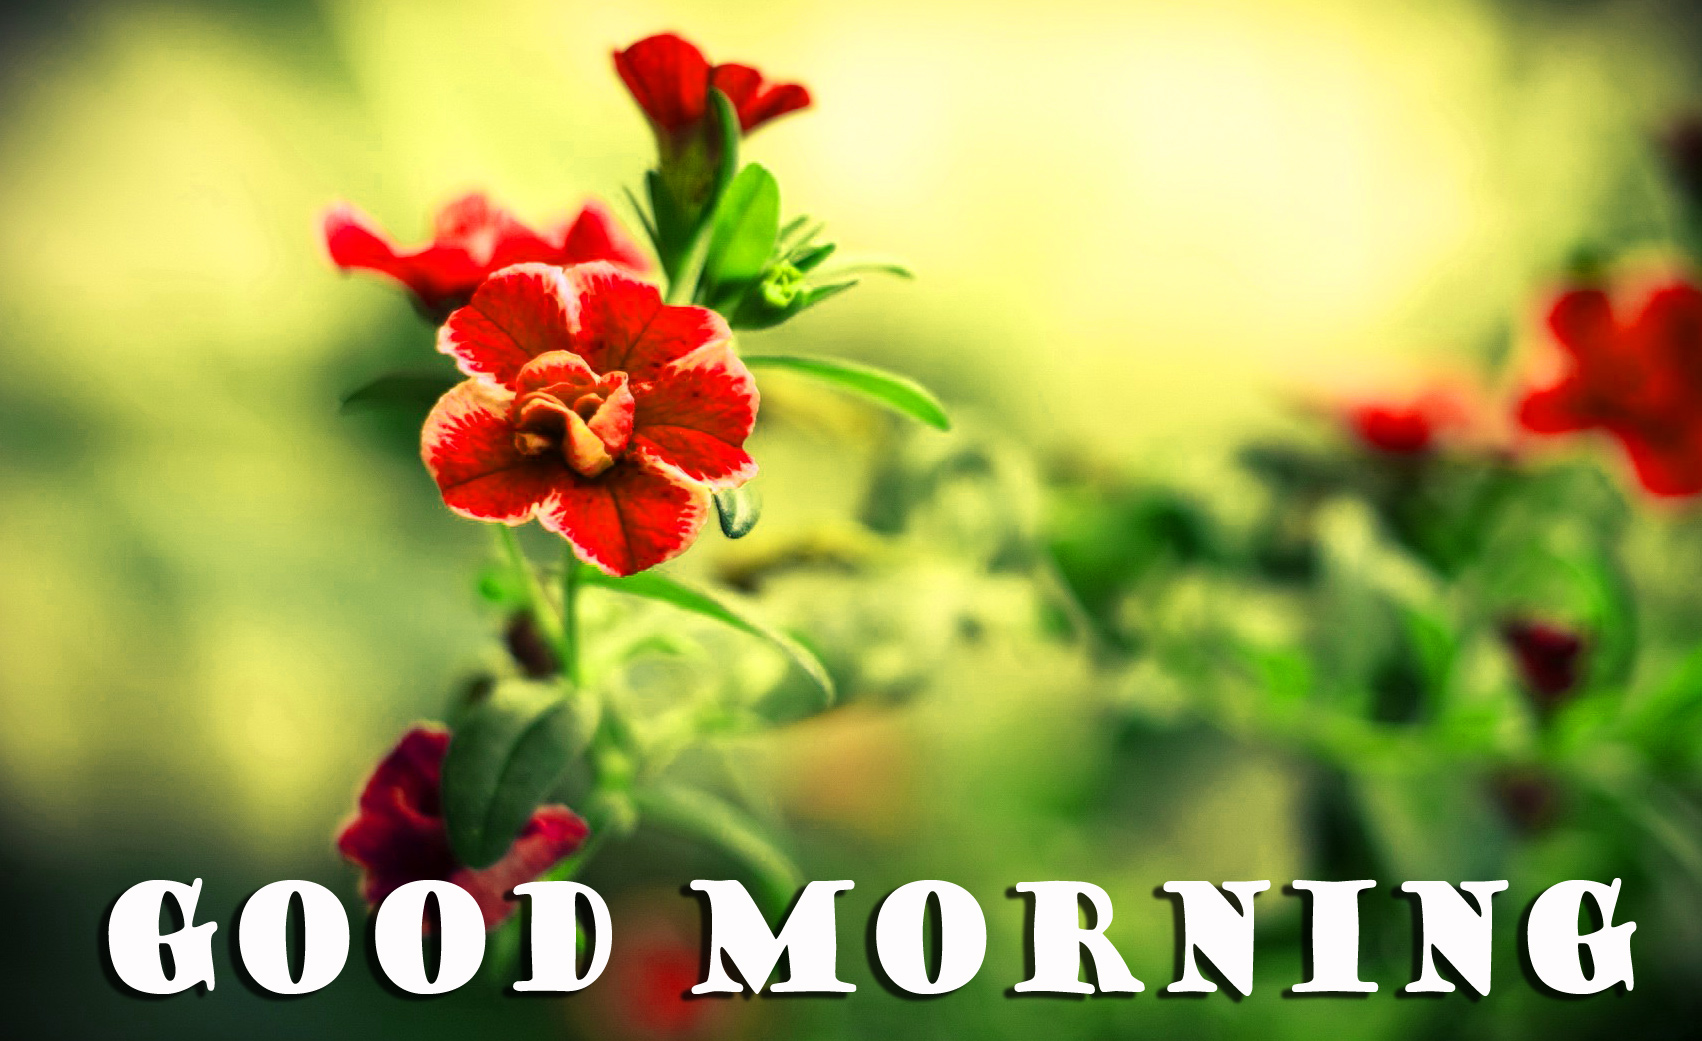 गुड मॉर्निंग New Wonderful Good Morning Wallpaper Pictures Photo Free HD